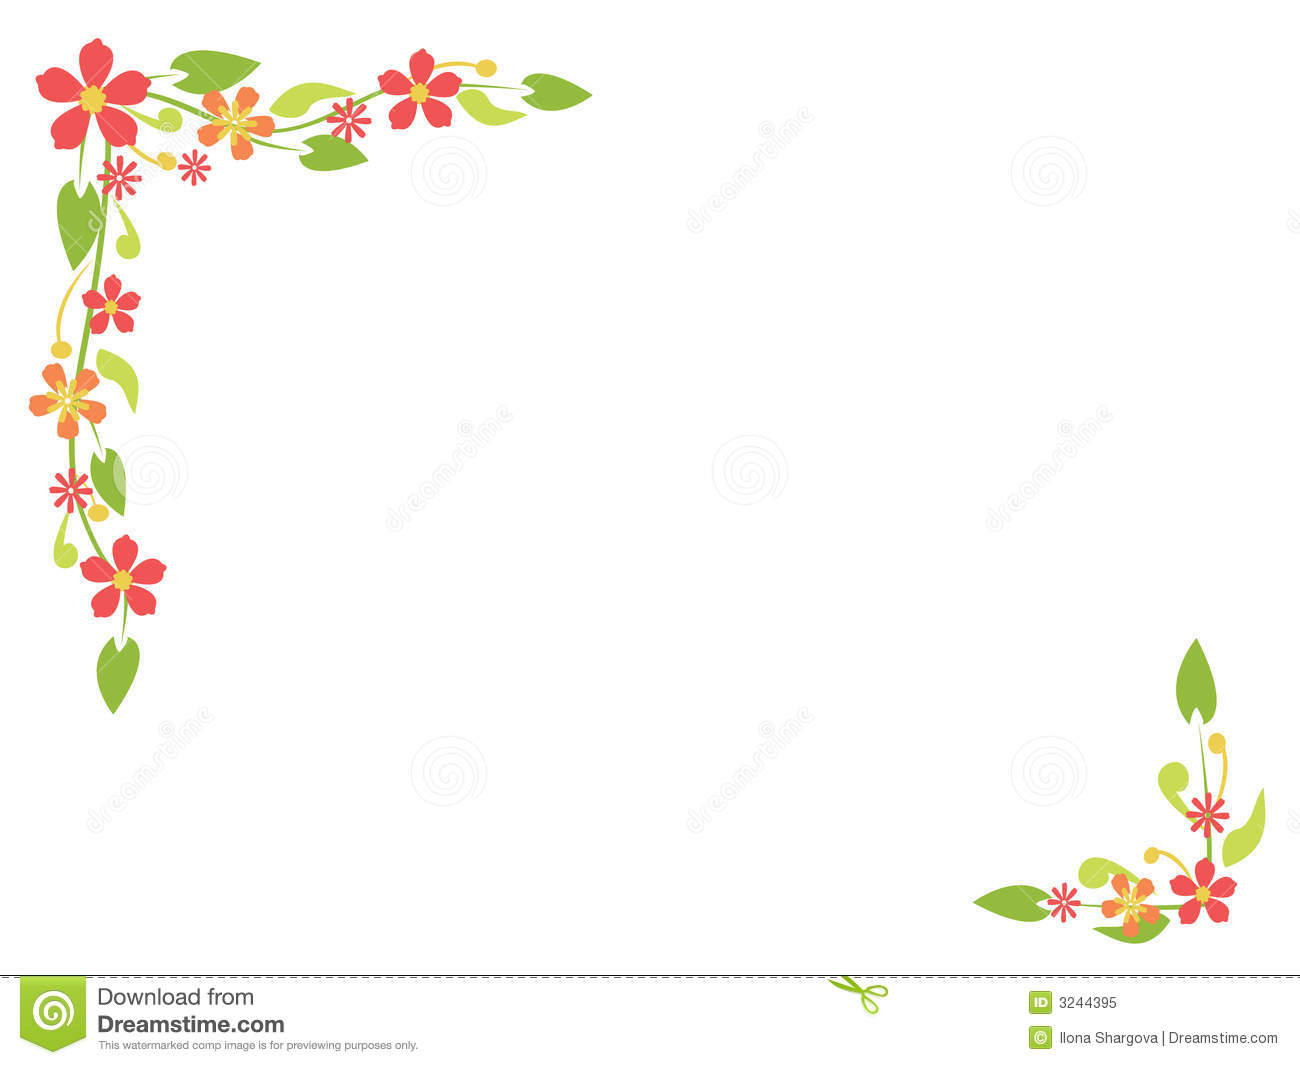 Simple flower pattern background - photo#11